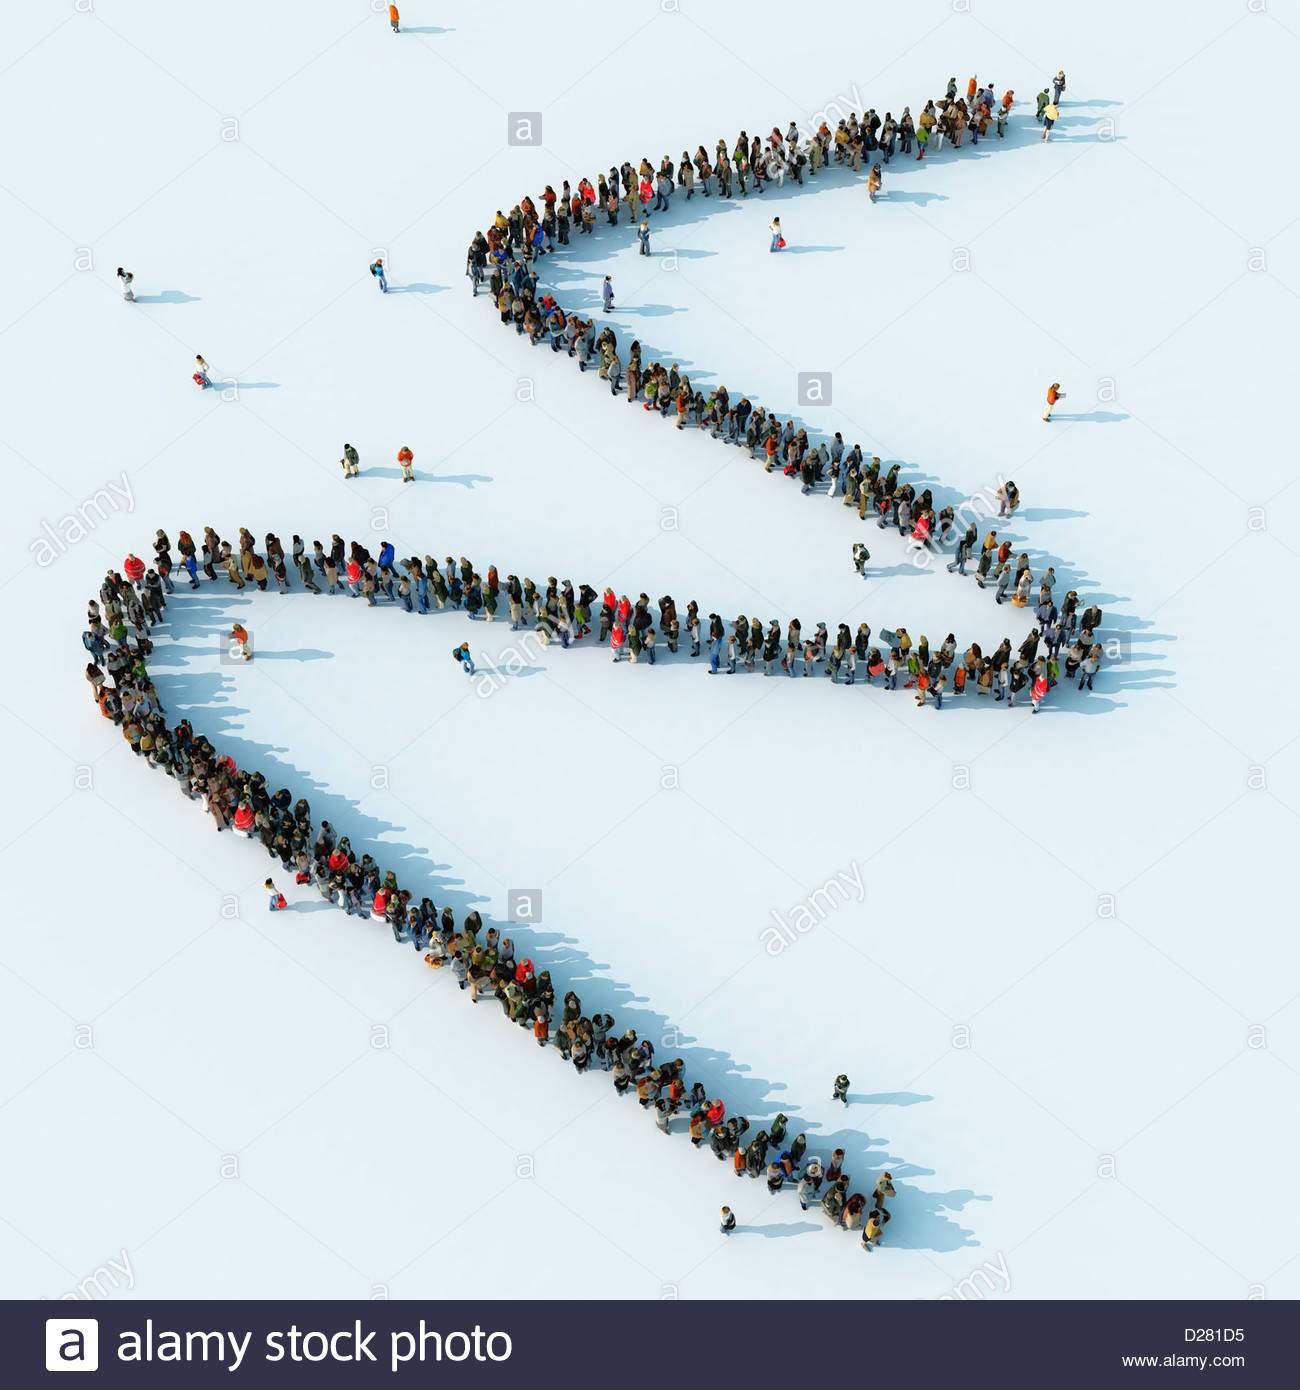 Queue of people waiting in a zigzag line - Stock Image